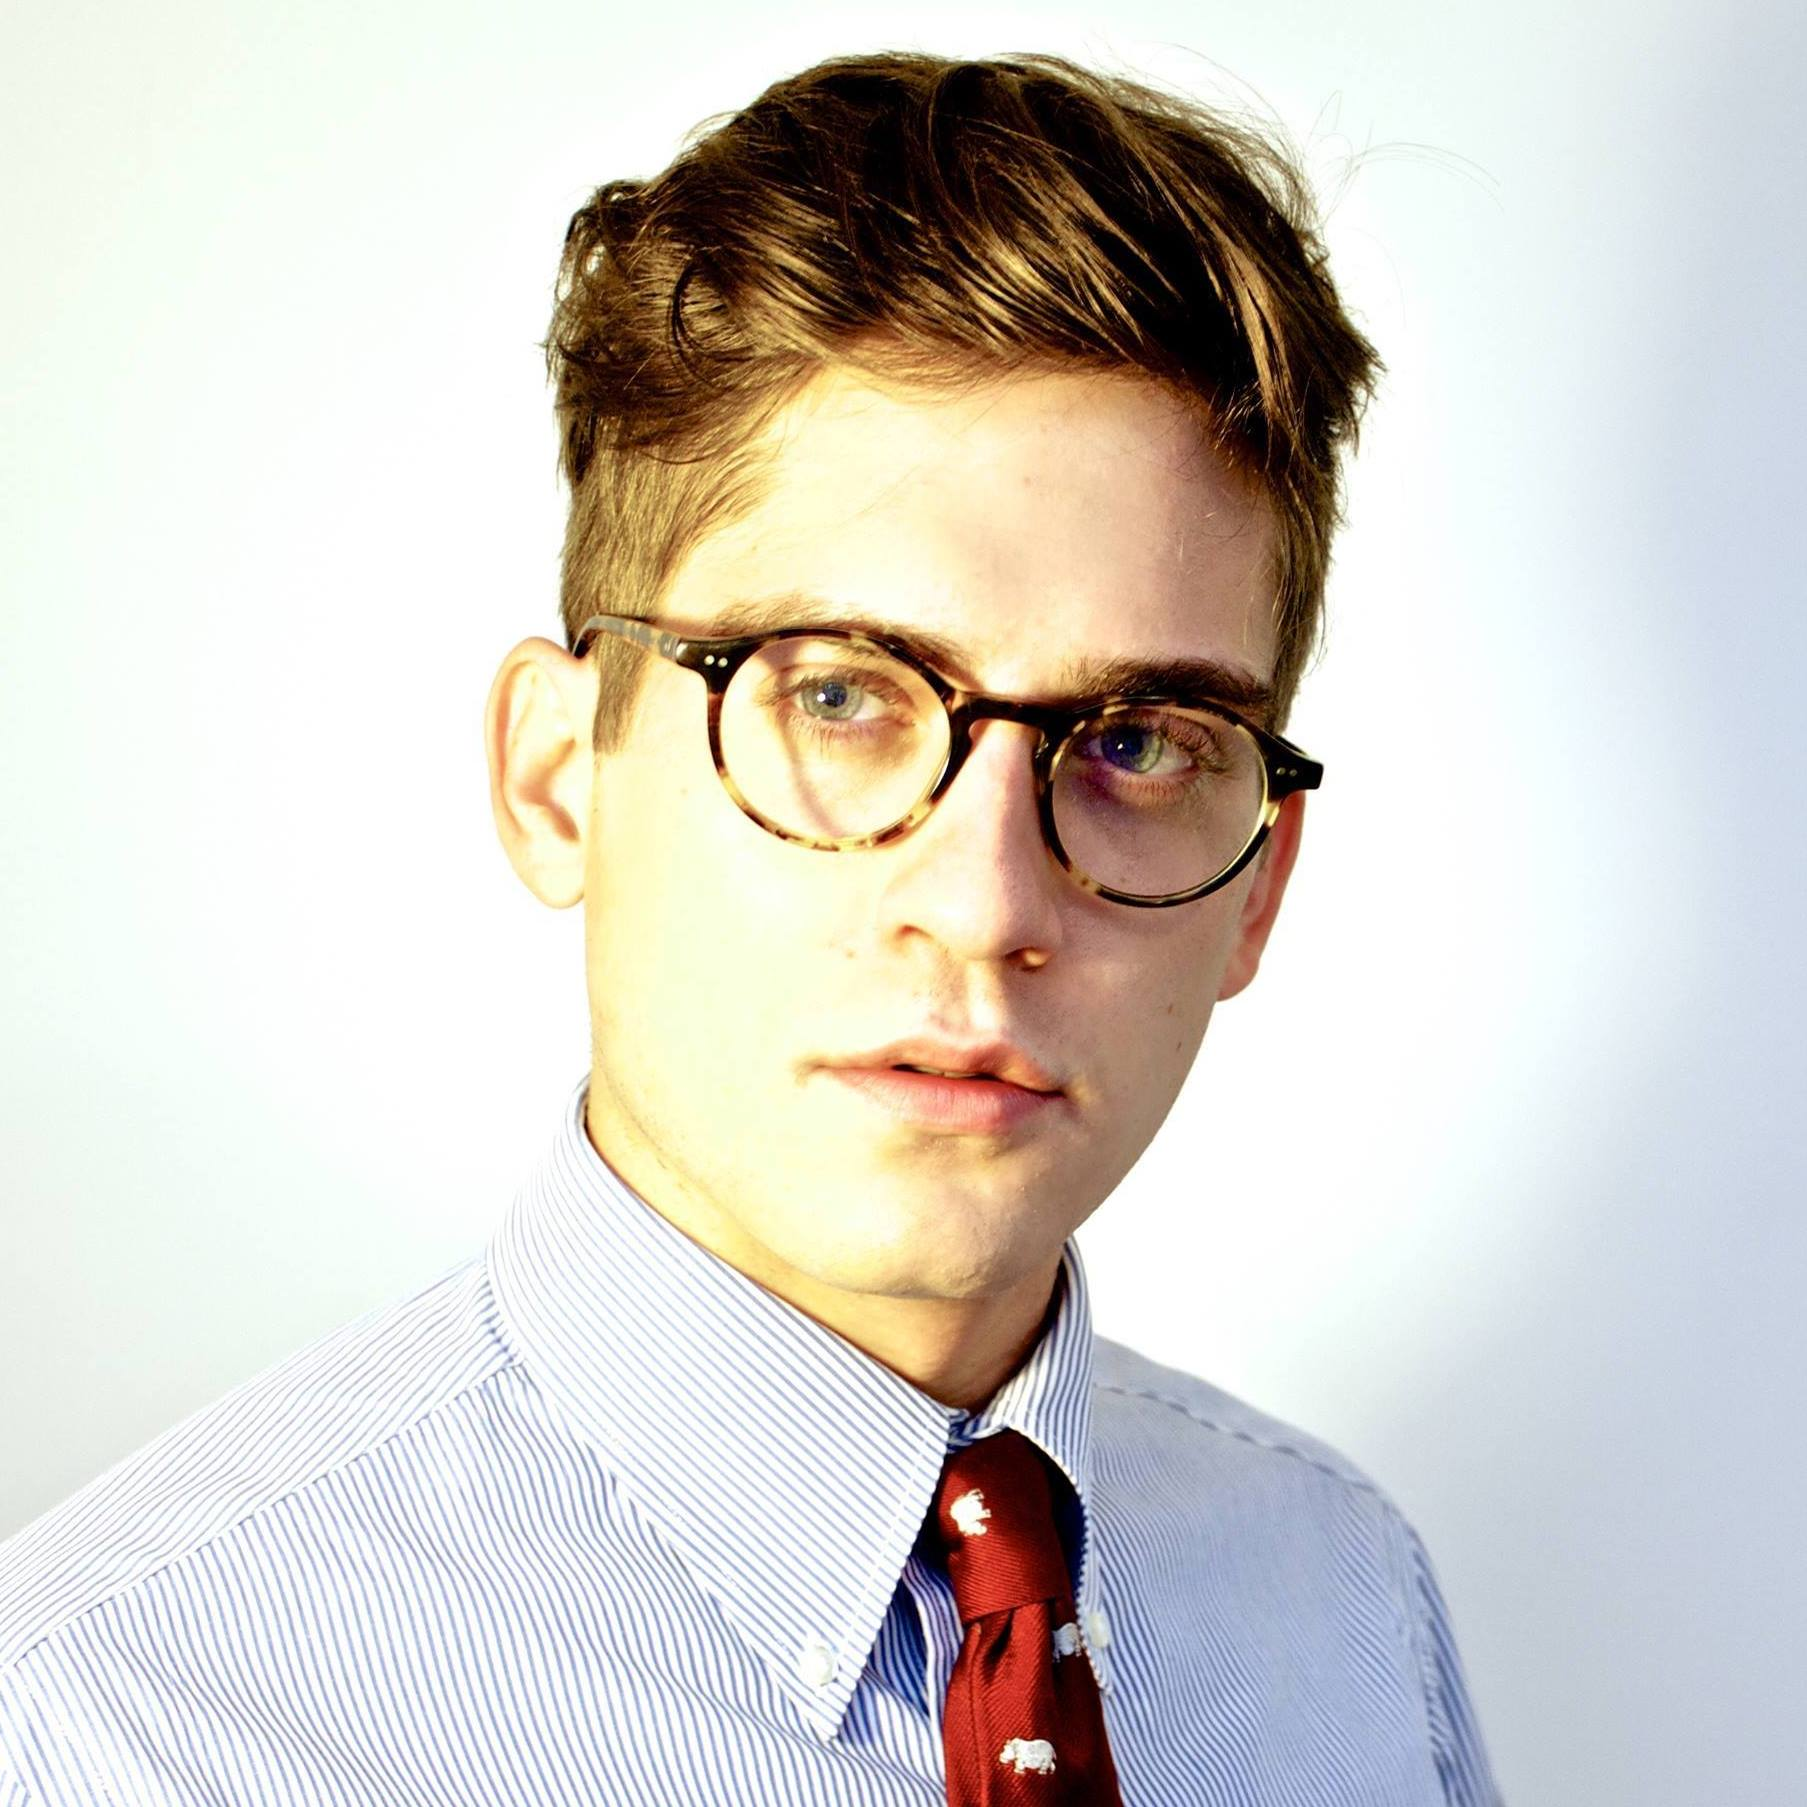 The NYU administration postponed Lucian Wintrich's appearance in order to prepare for expected disruption and harassment.  Lucian Winterish is a White House press correspondent for the Gateway Pundit.